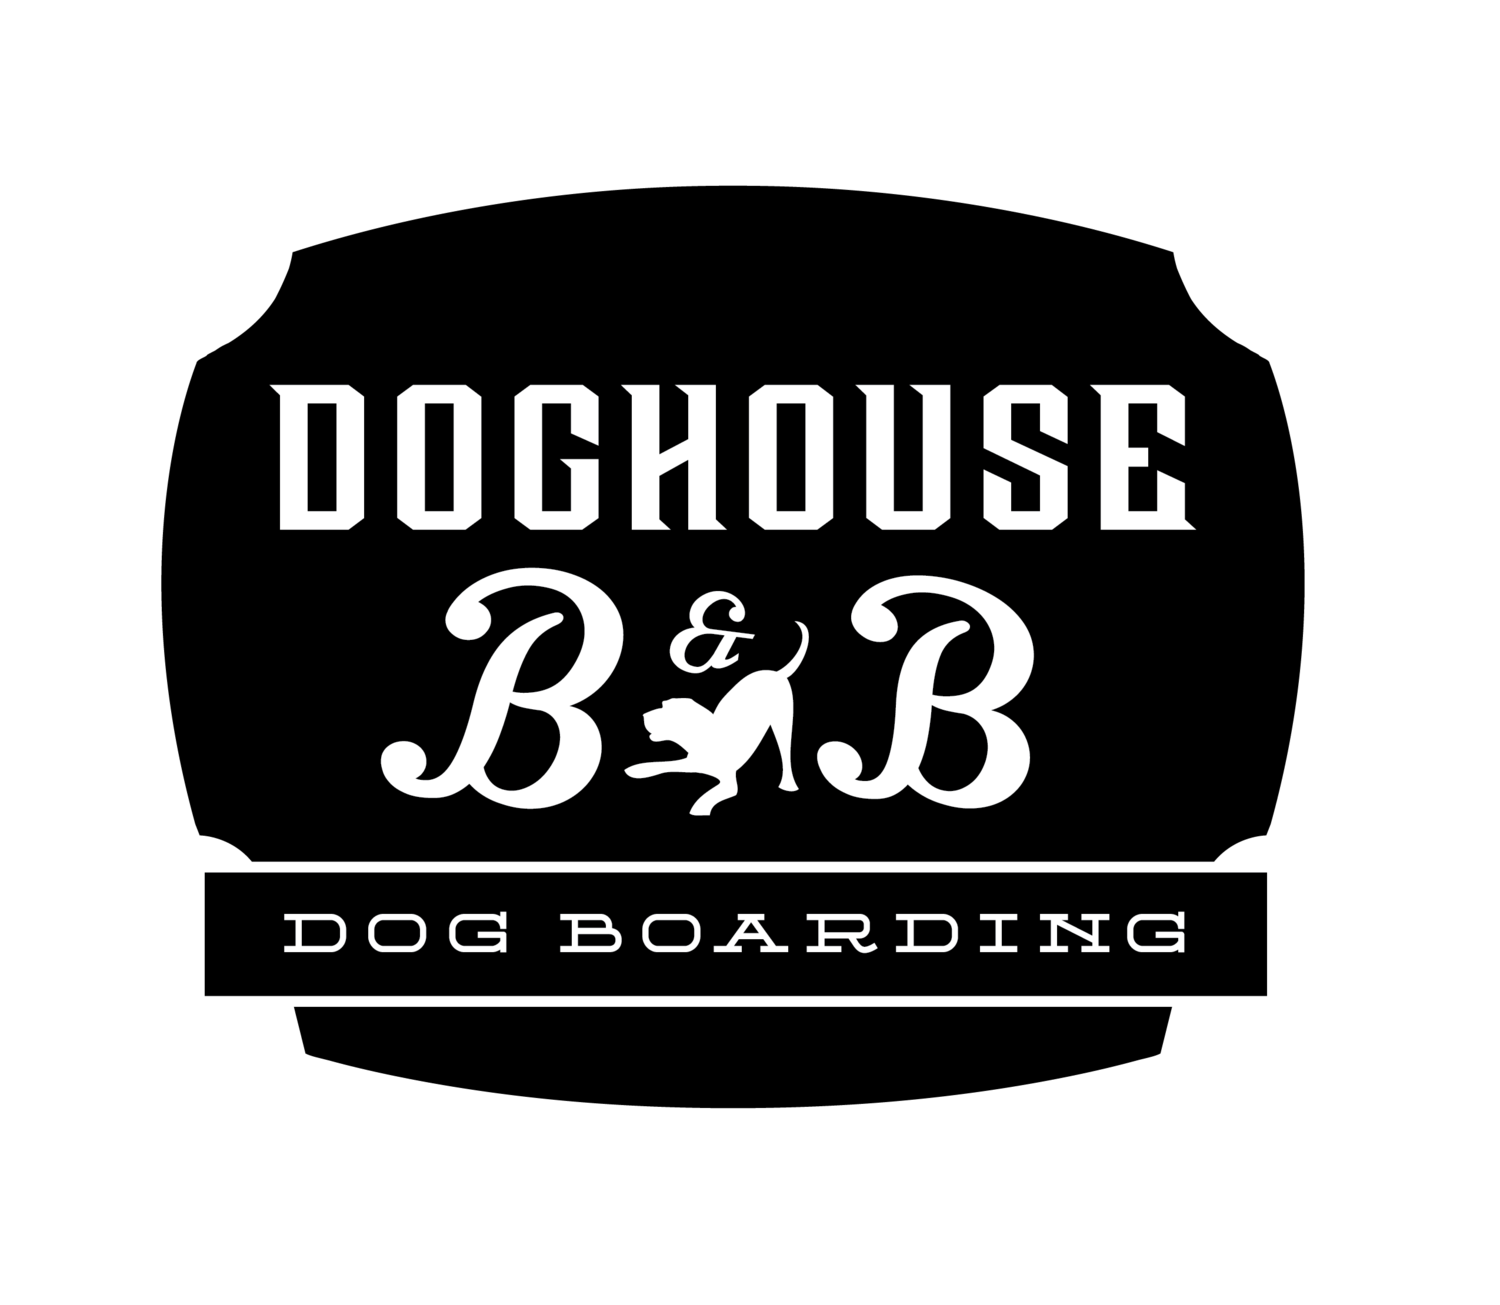 DOG HOUSE B&B